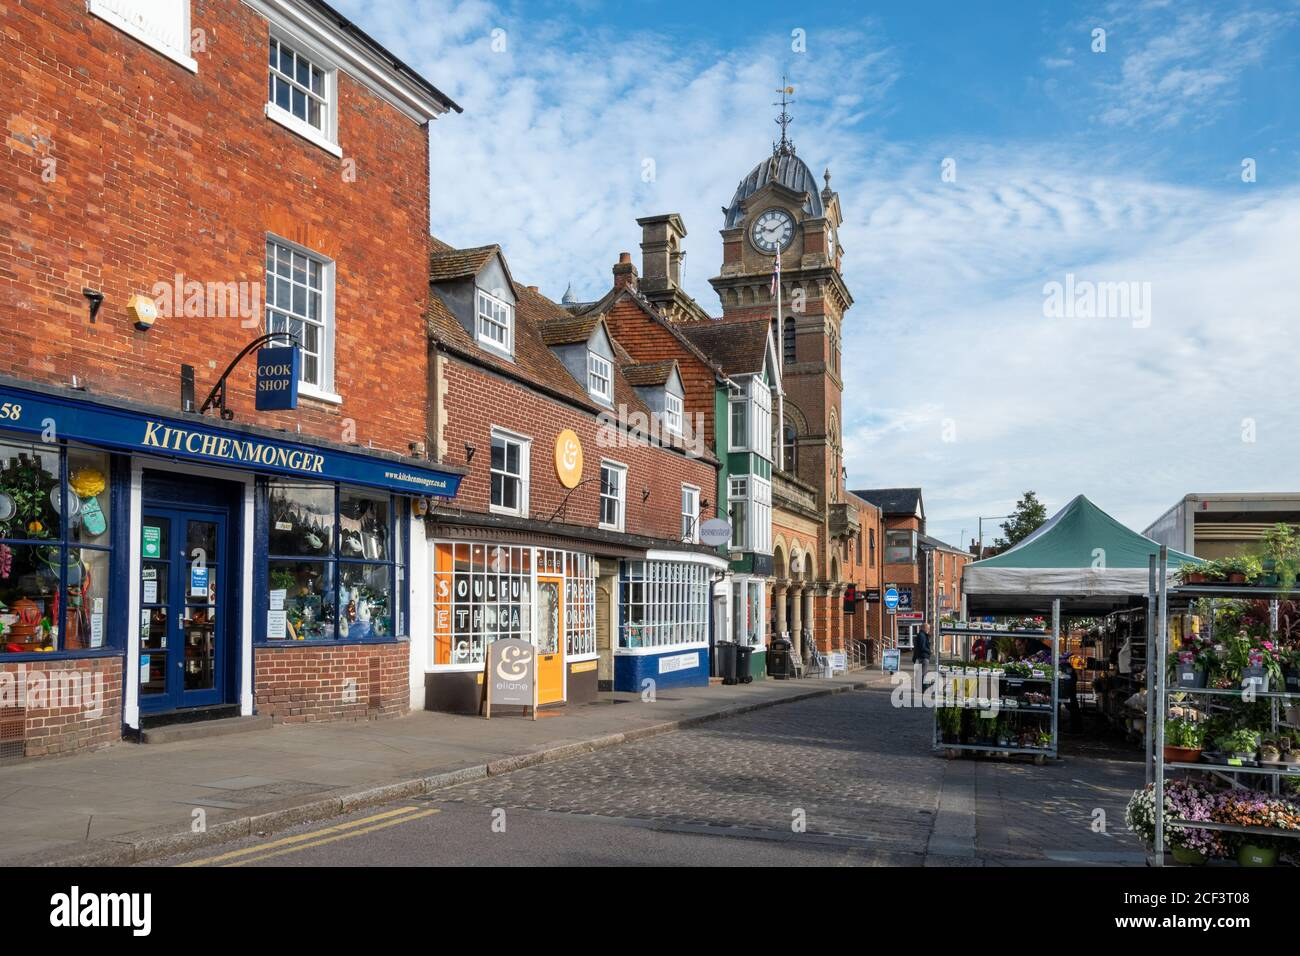 market-day-at-hungerford-berkshire-uk-view-of-the-high-street-with-the-town-hall-shops-and-market-stalls-2CF3T08.jpg